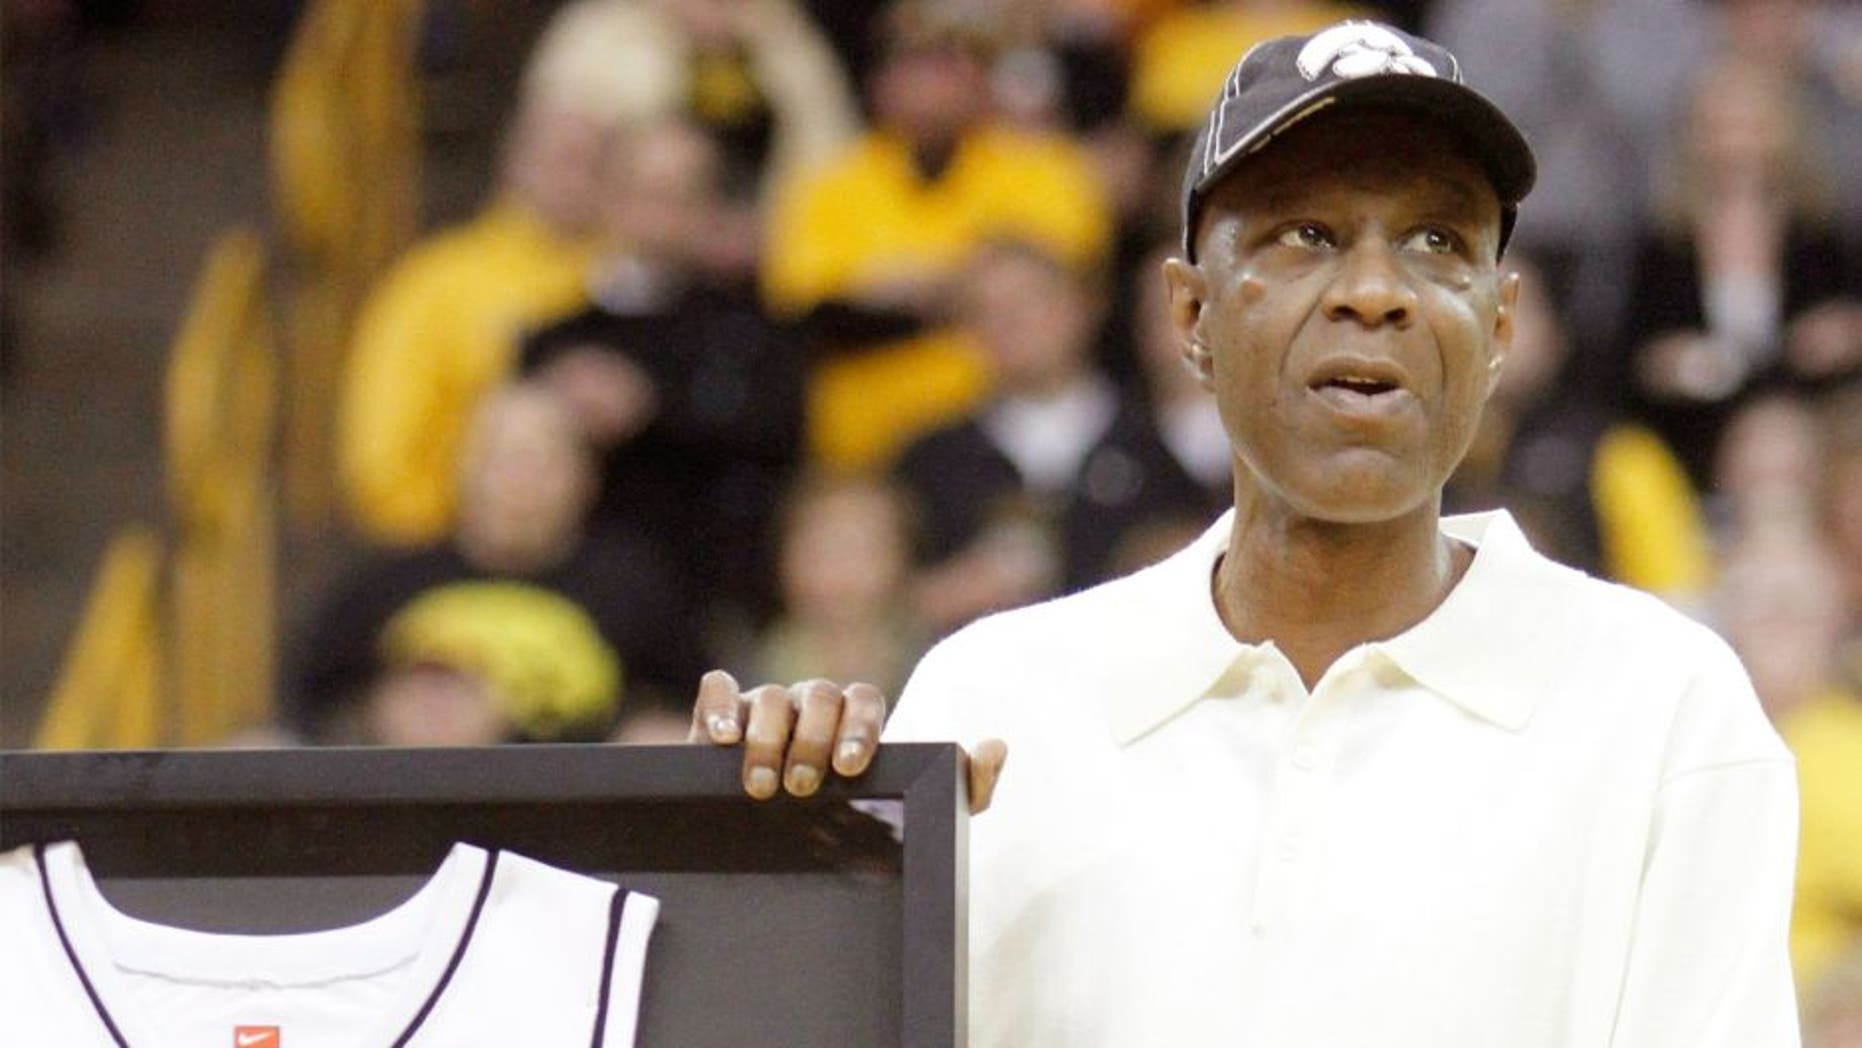 IOWA CITY, IA - MARCH 07: All-time scoring leader Roy Marble of the Iowa Hawkeyes is honored at halftime of the match-up against Northwestern Wildcats on March 7, 2015 at Carver-Hawkeye Arena in Iowa City, Iowa. (Photo by Matthew Holst/Getty Images)